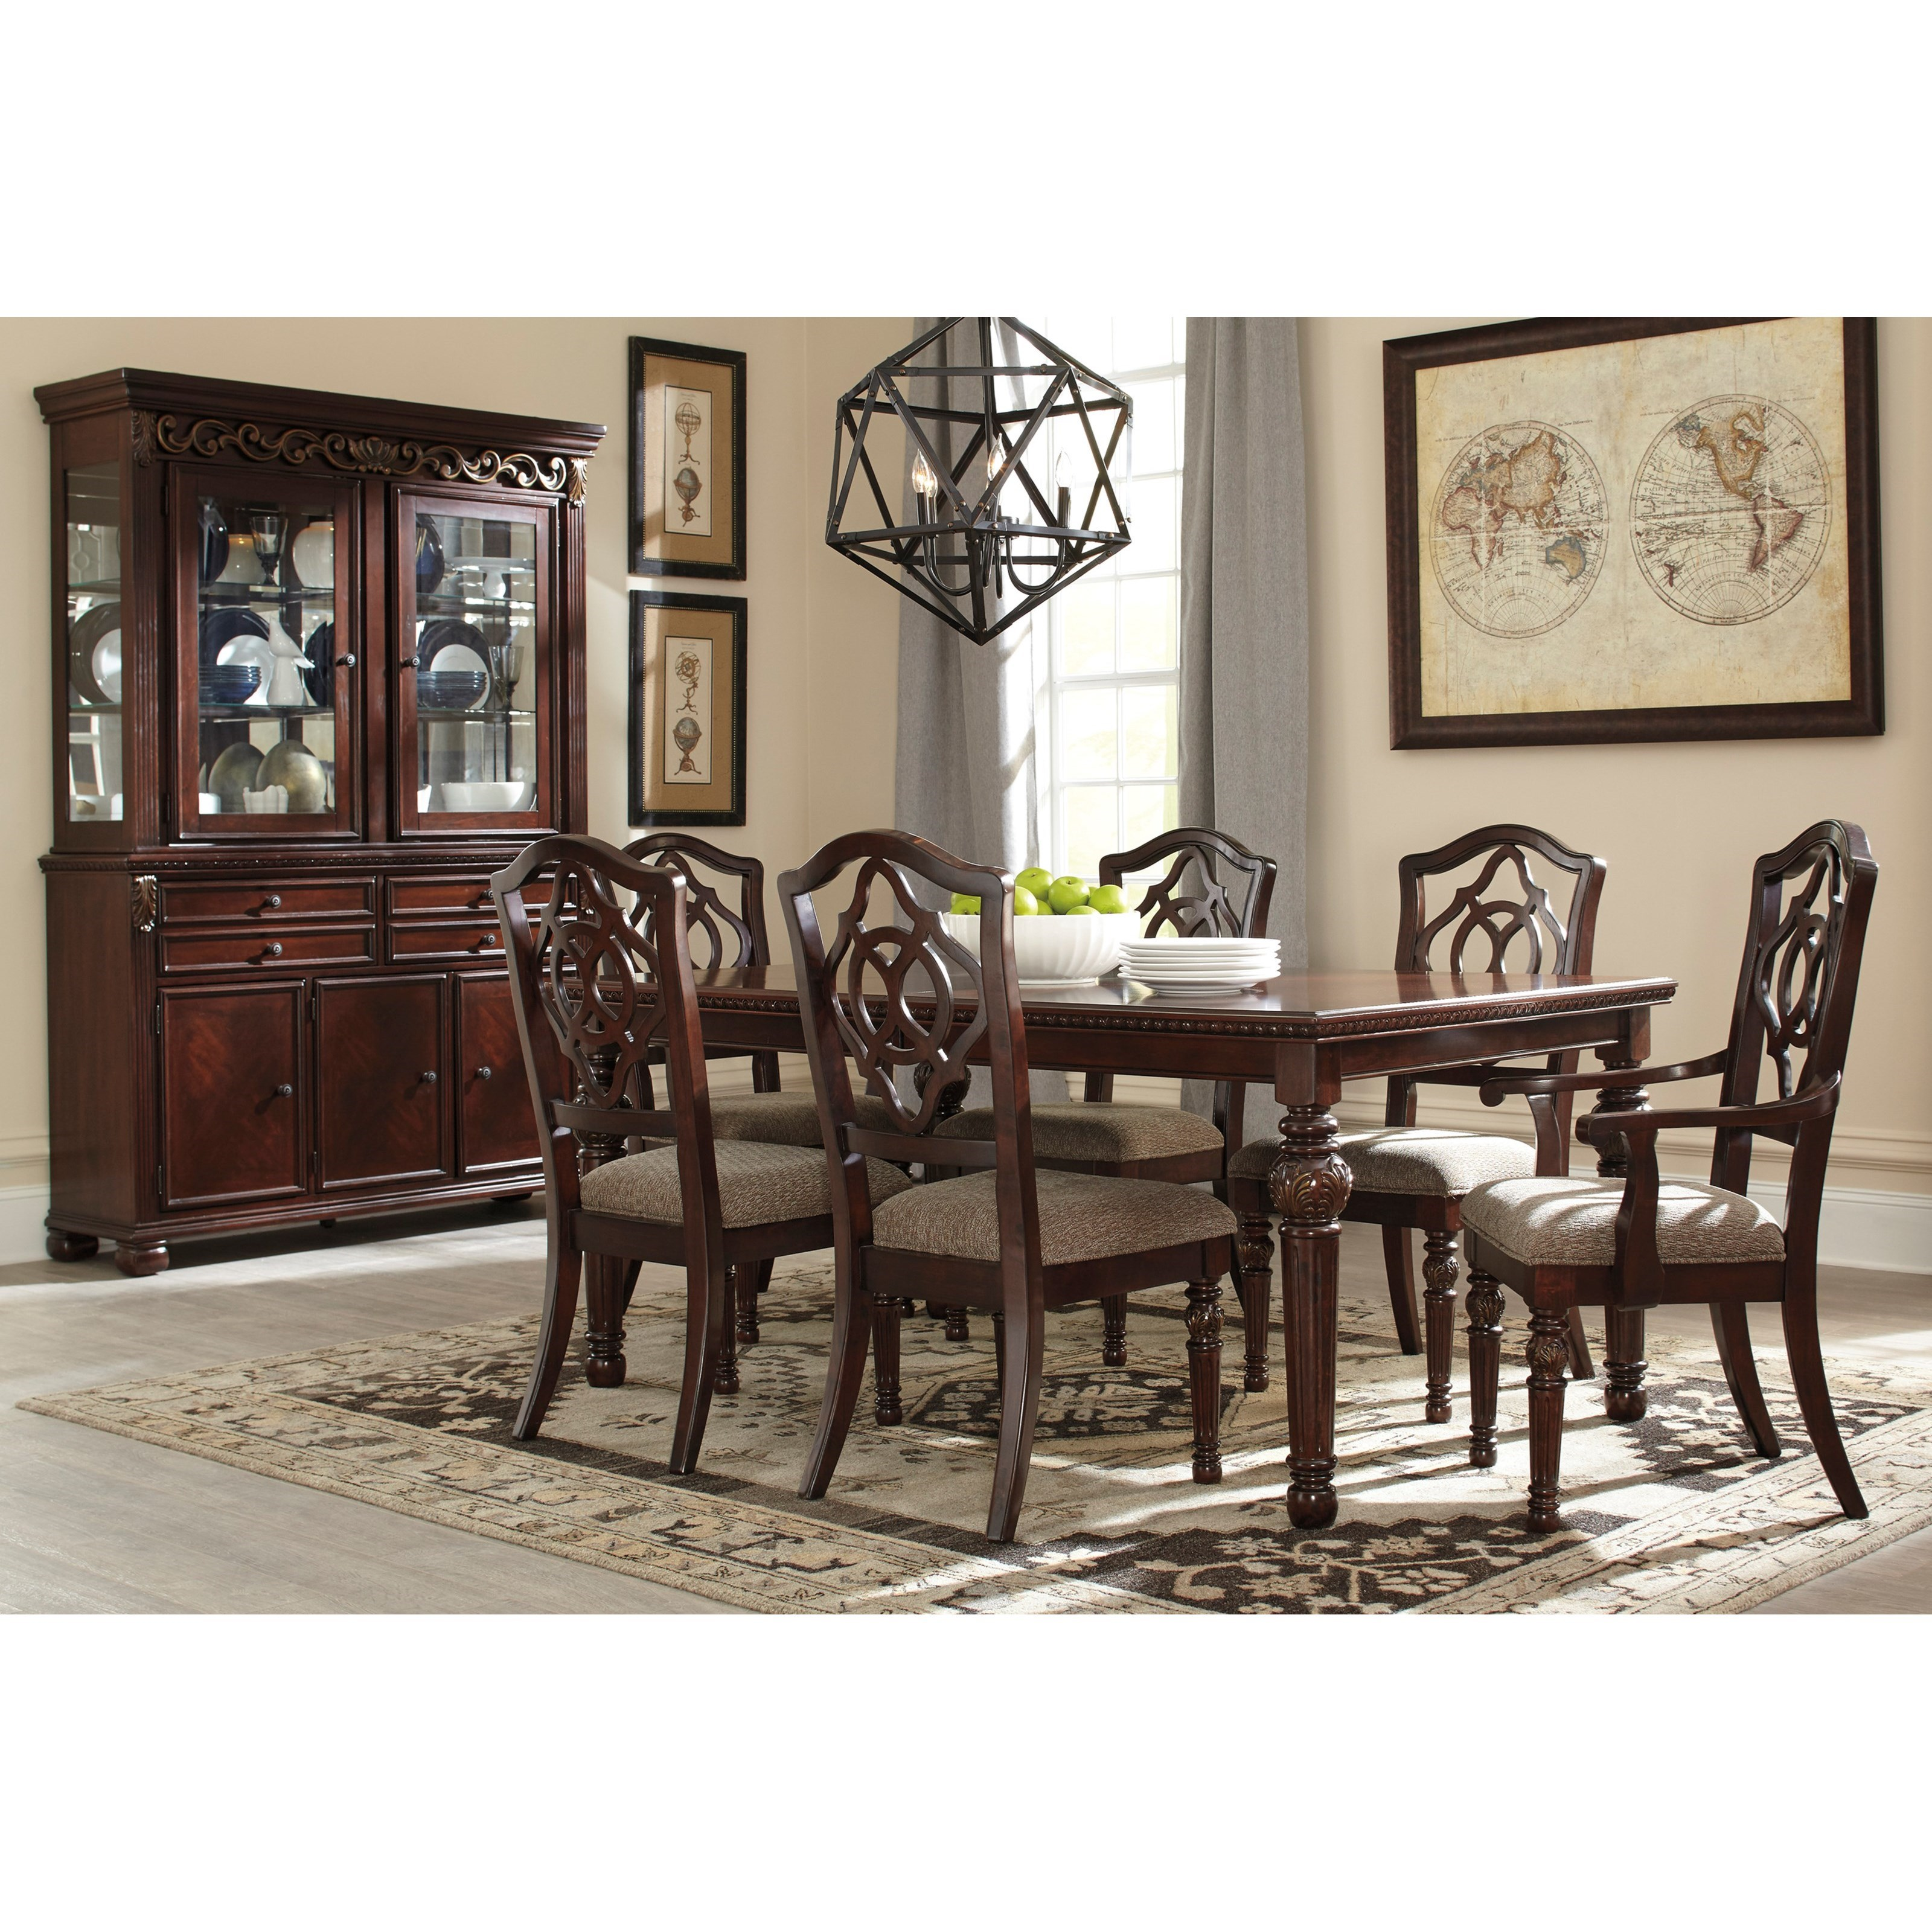 Signature Design By Ashley Leahlyn Formal Dining Room